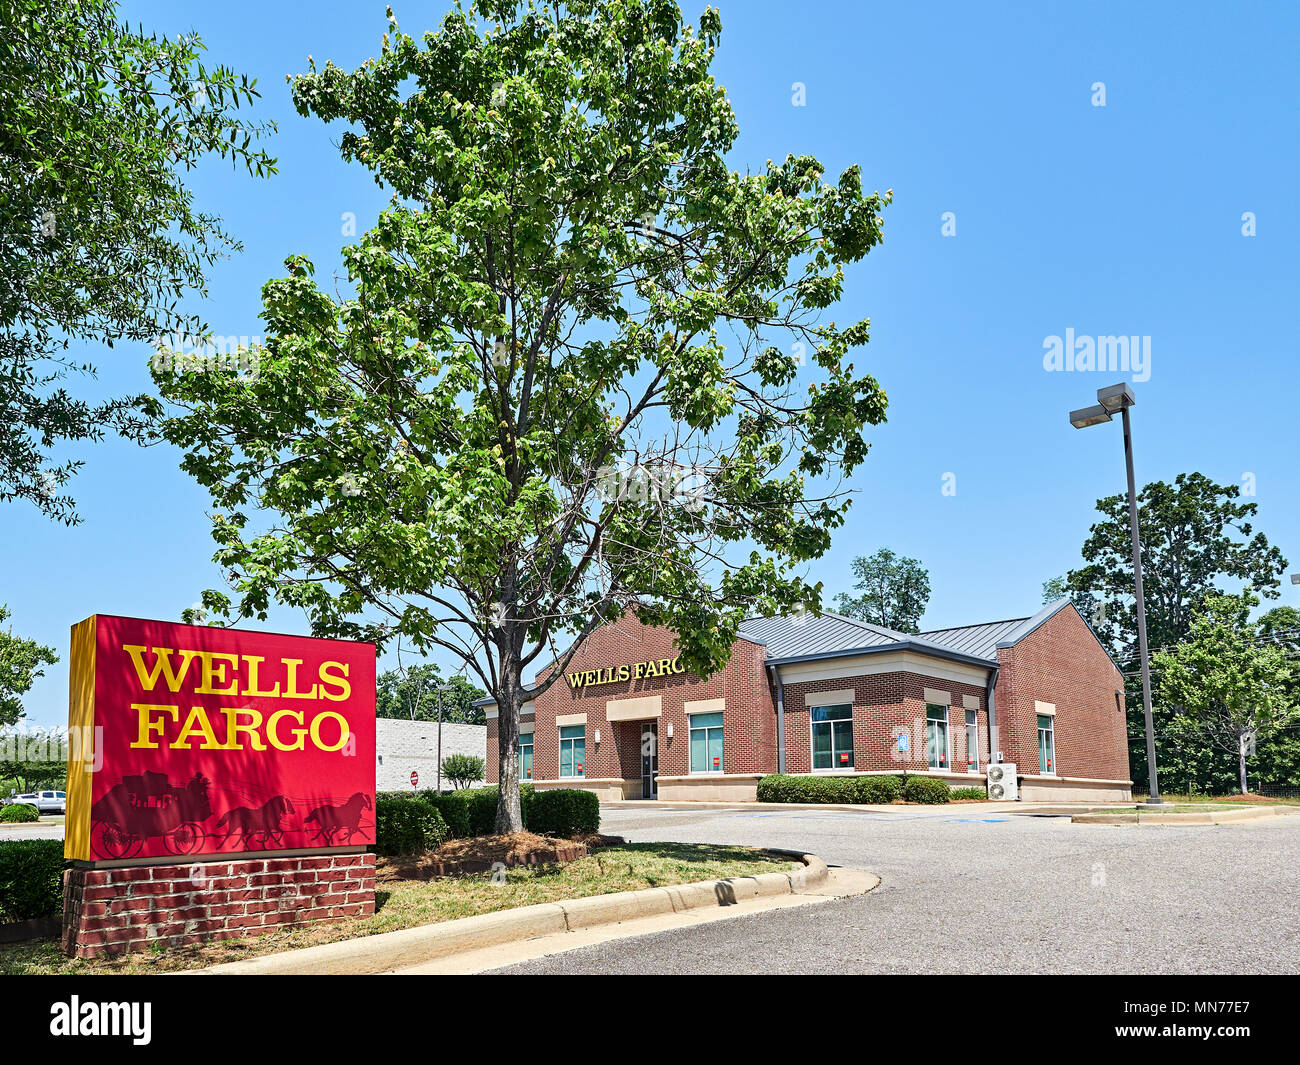 Wells Fargo Bank branch sign, with corporate logo, exterior and entrance in Montgomery Alabama, USA. - Stock Image